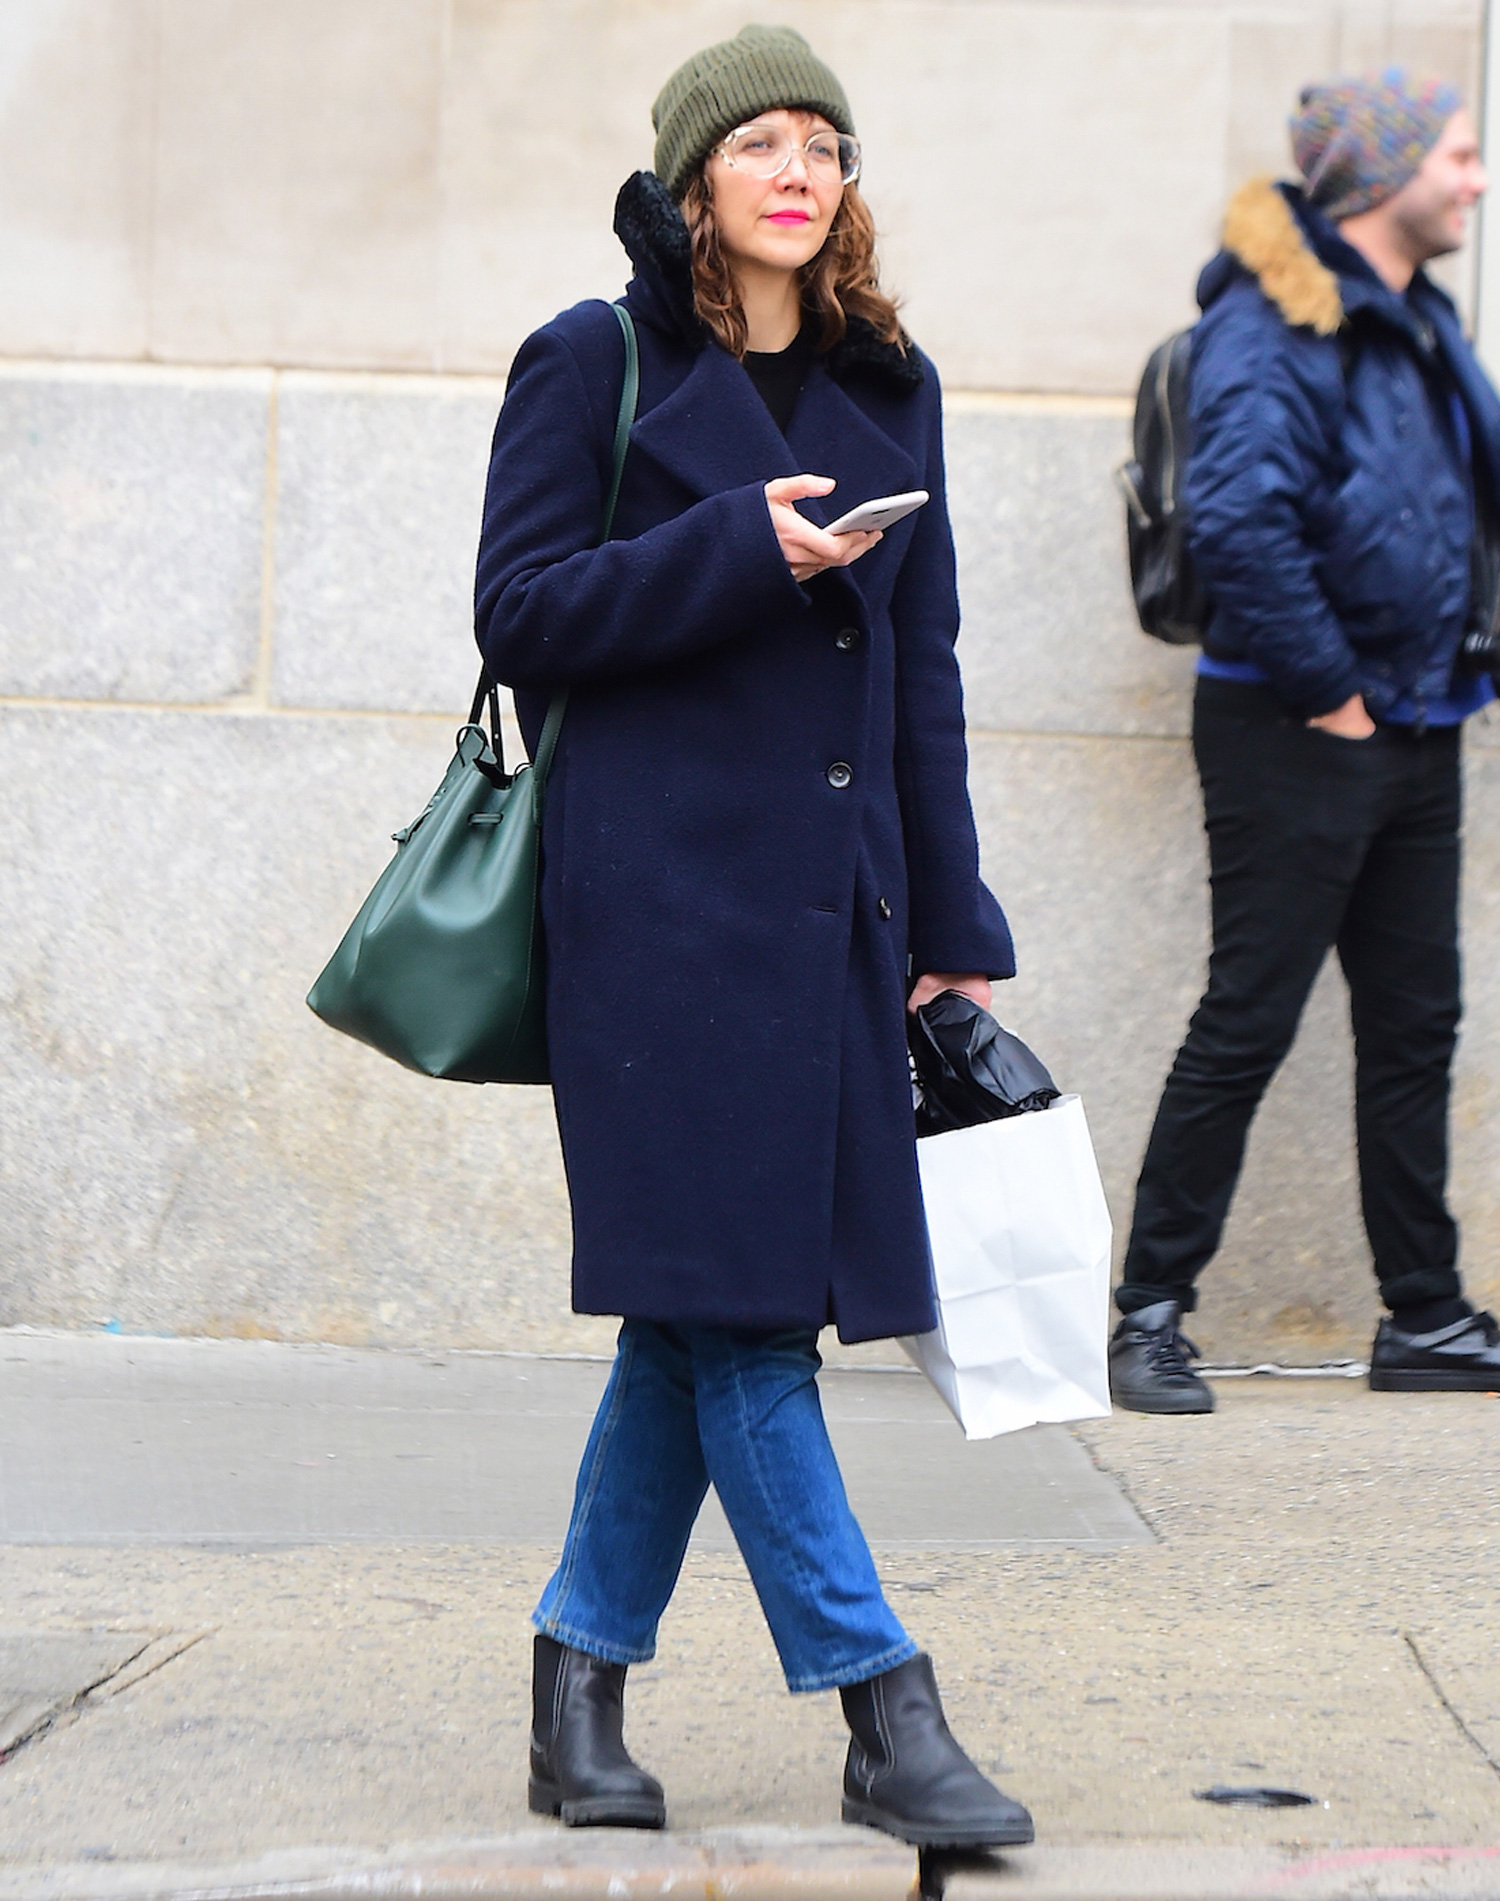 EXCLUSIVE: Maggie Gyllenhaal is a Spectacled Shopper as she Buys Christmas Gifts in Soho